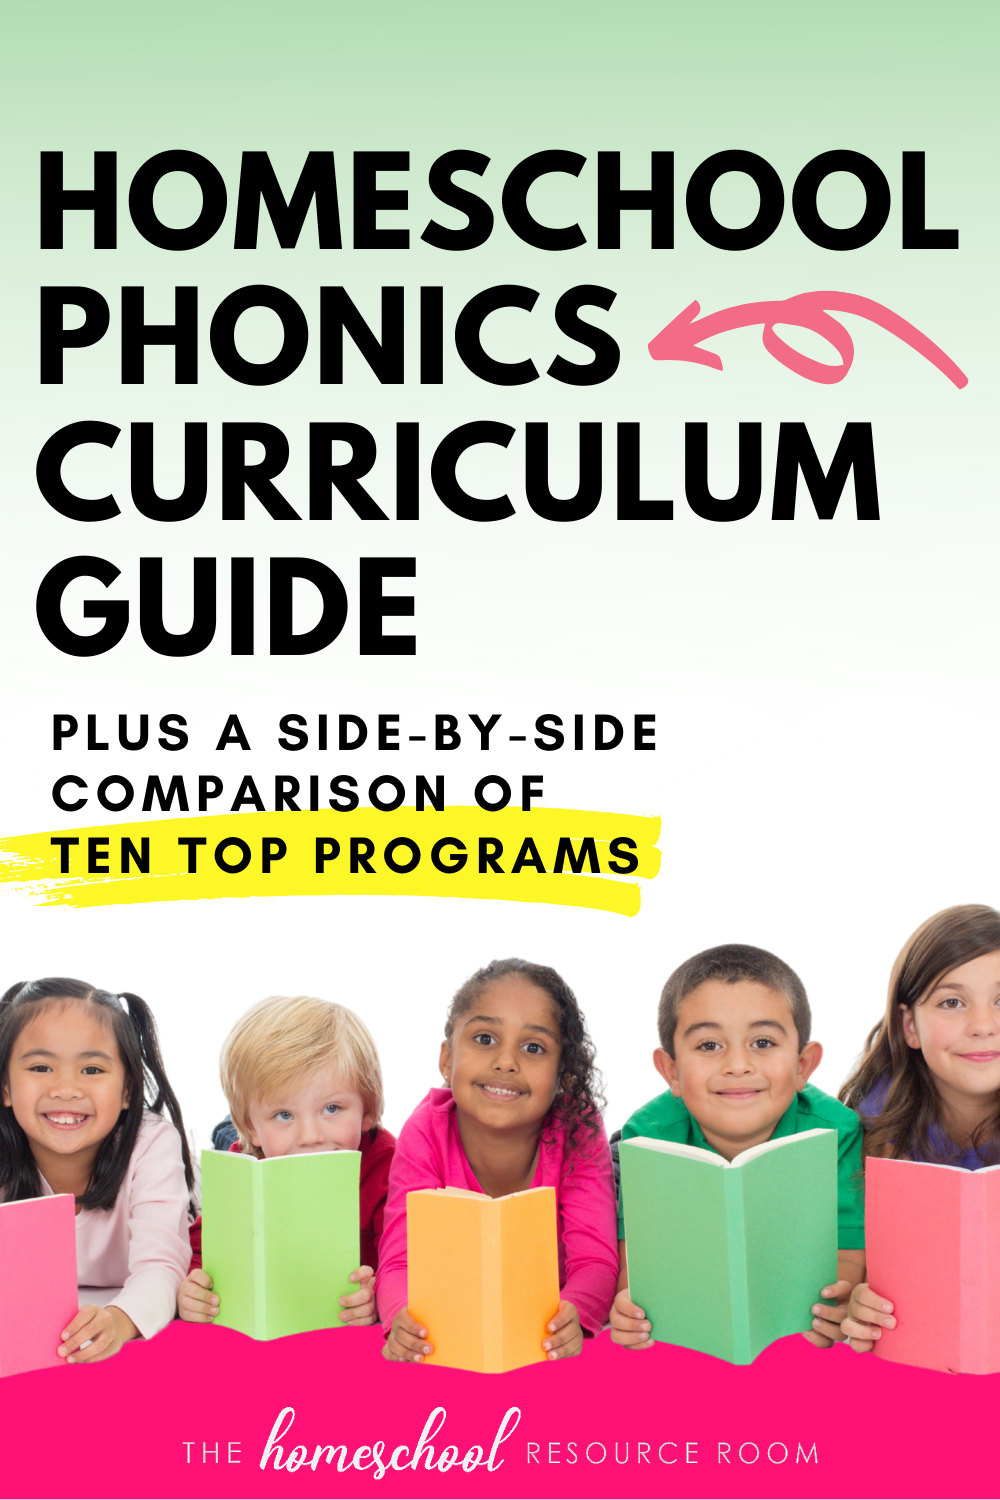 Homeschool Phonics Curriculum Guide! Plus ten of the top learn-to-read programs compared side-by-side!